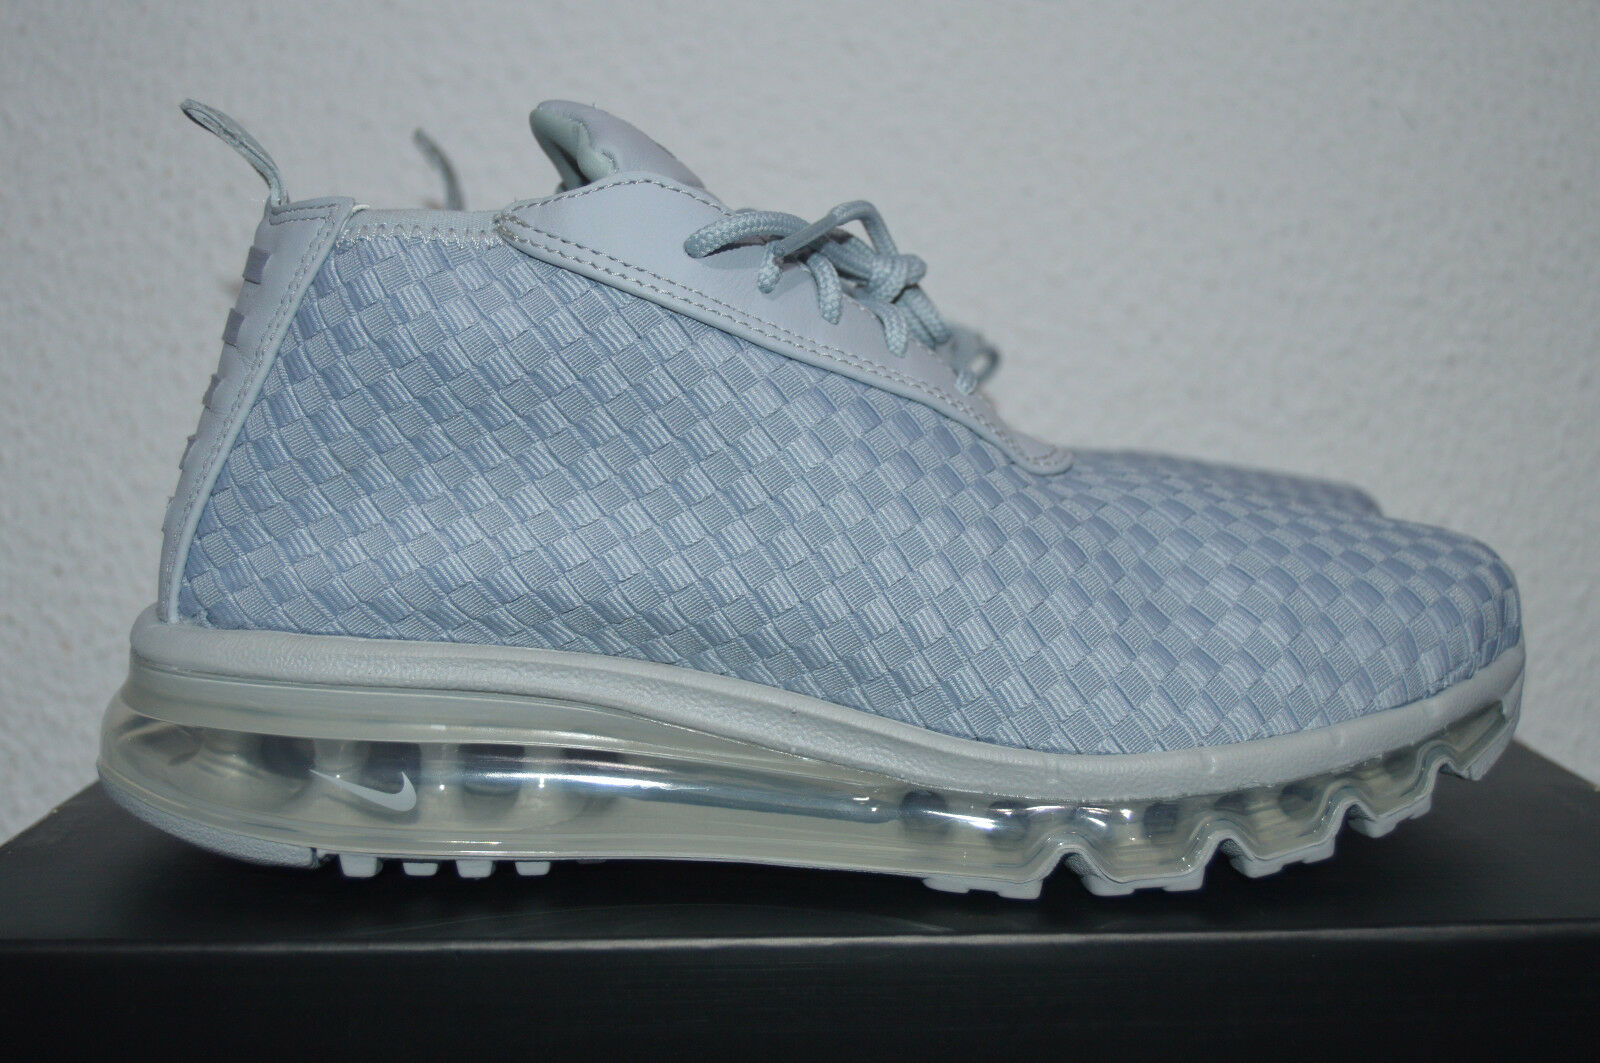 NIKE MAX WOVEN BOOT 921854 001 WOLF GREY-WHITE US8 UK7